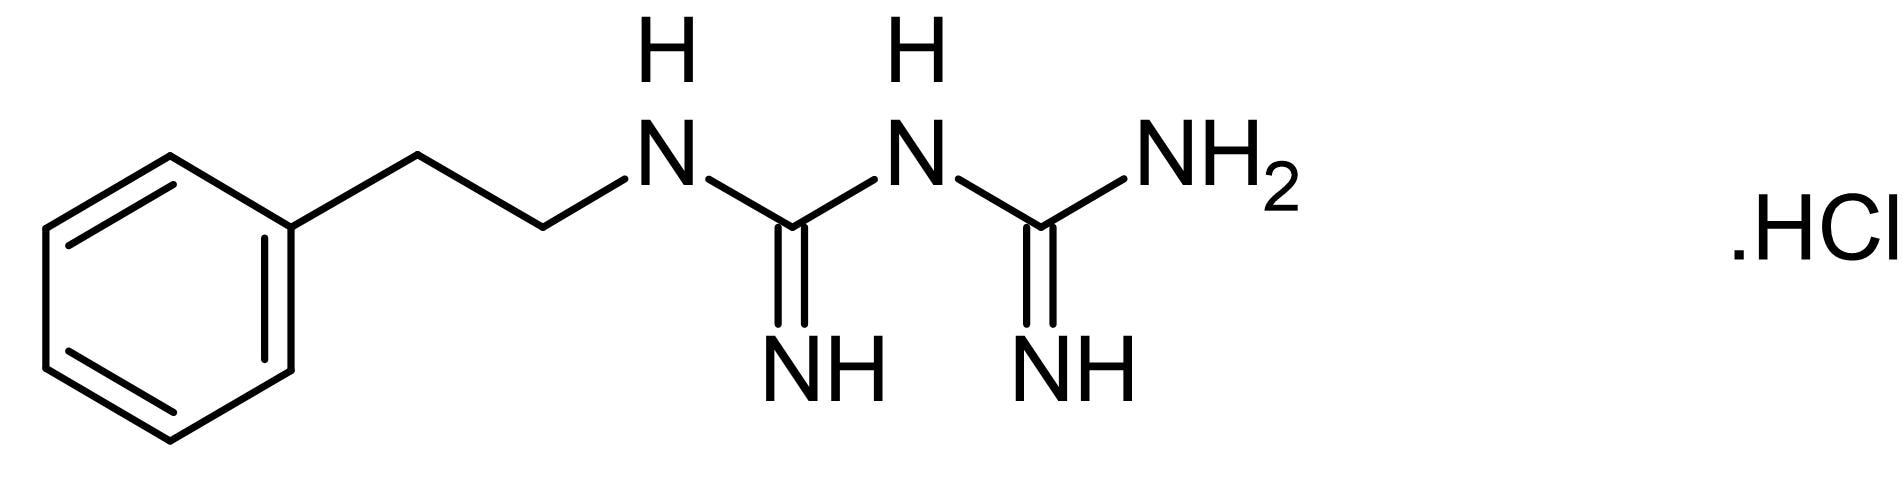 Chemical Structure - Phenformin hydrochloride, AMPK activator (ab141459)